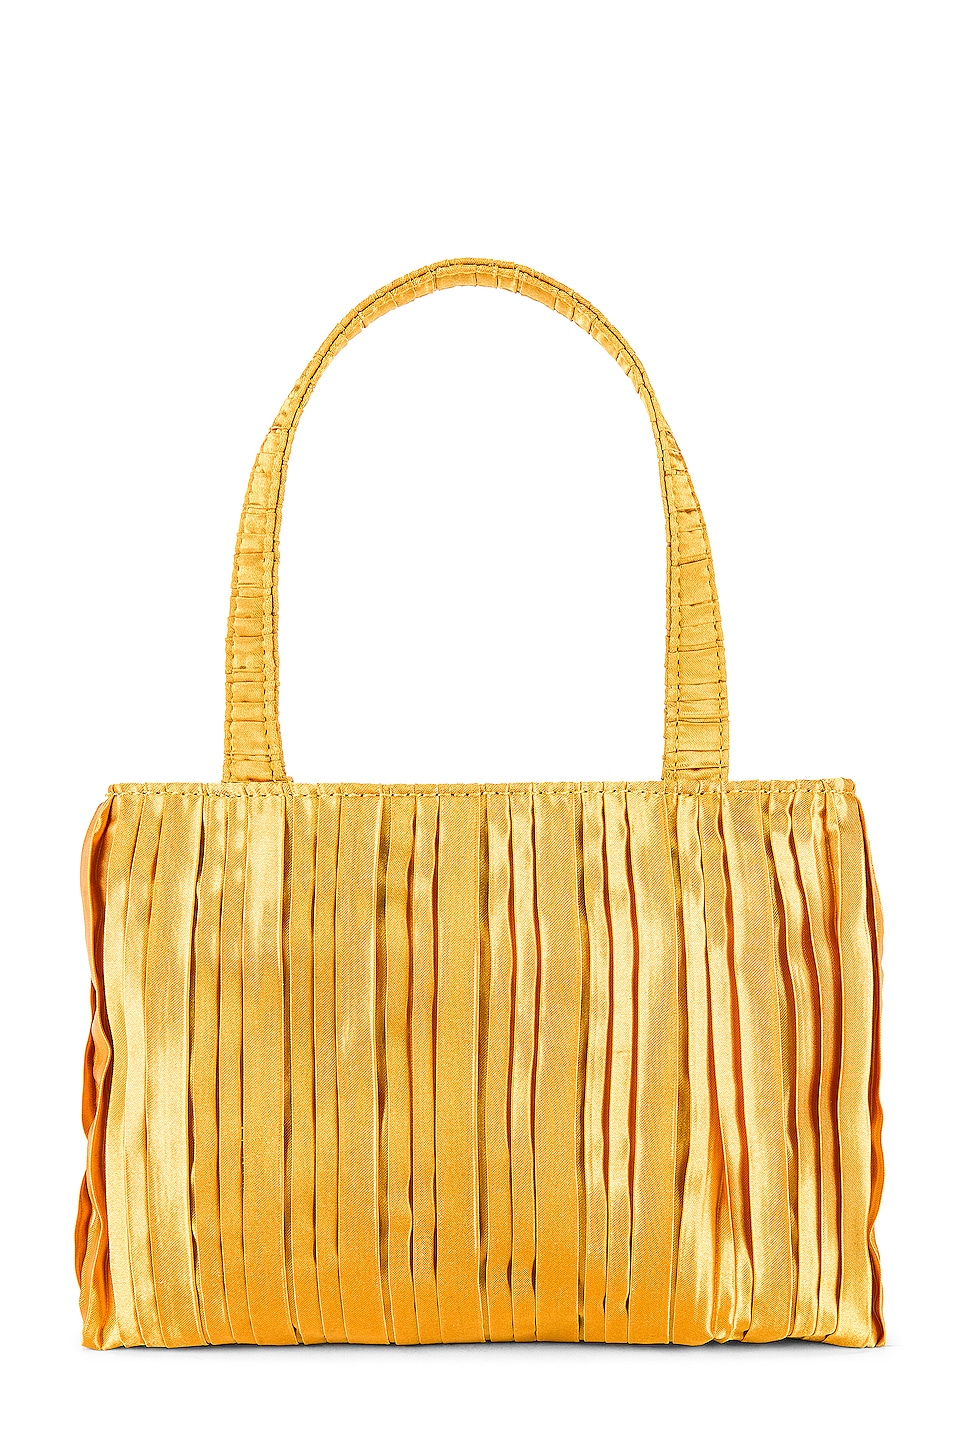 House of Harlow 1960 X REVOLVE Alexia Purse in Yellow